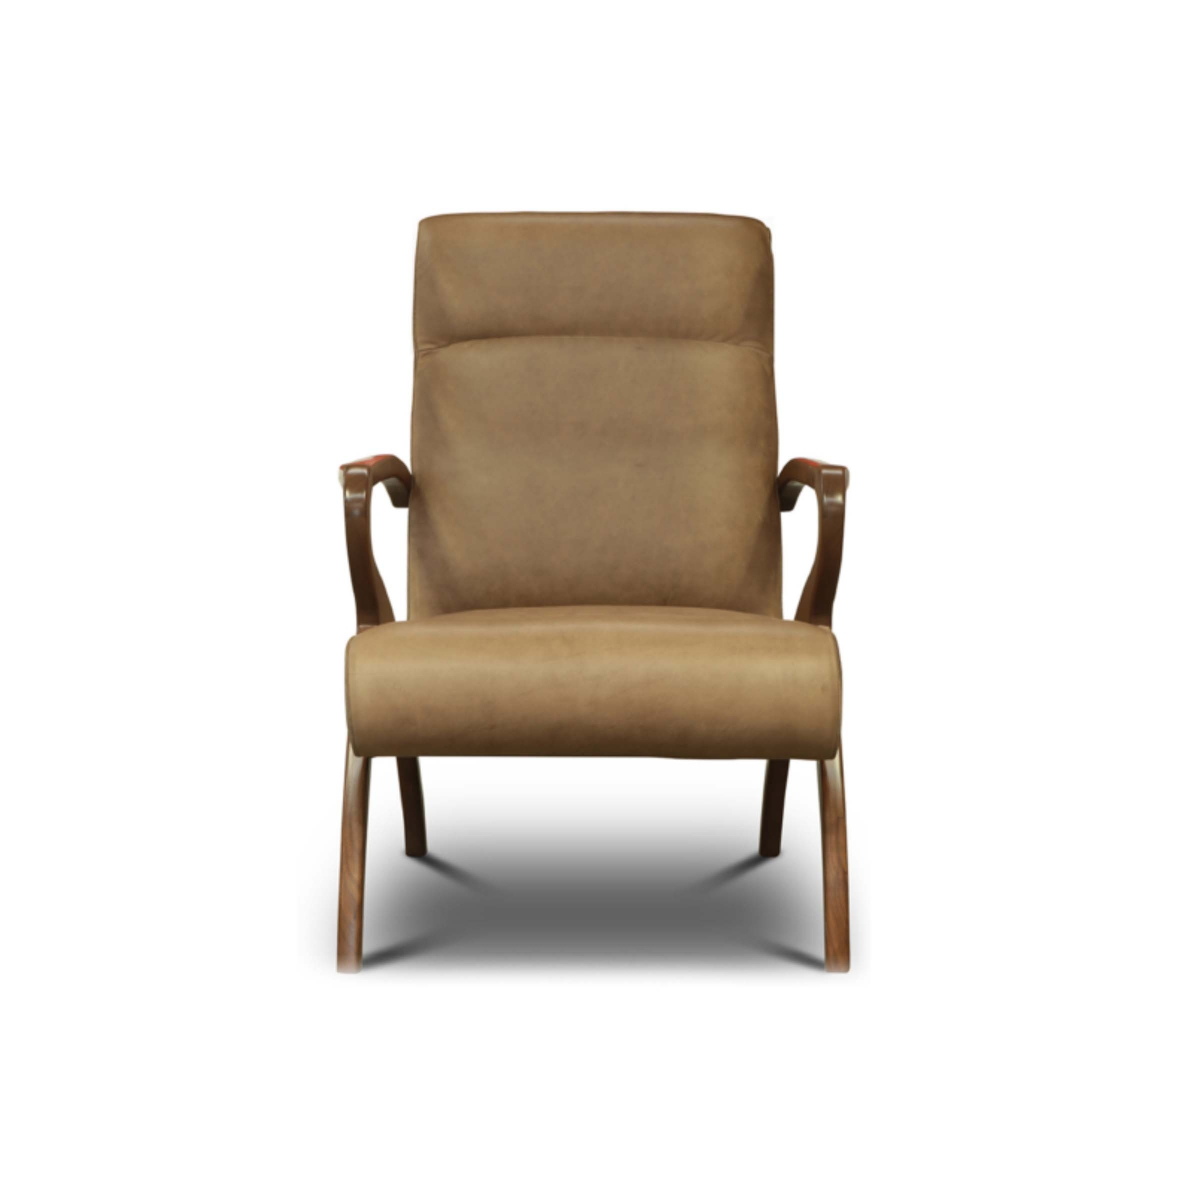 ADELE - 1E Accent Chair Windsor Peat